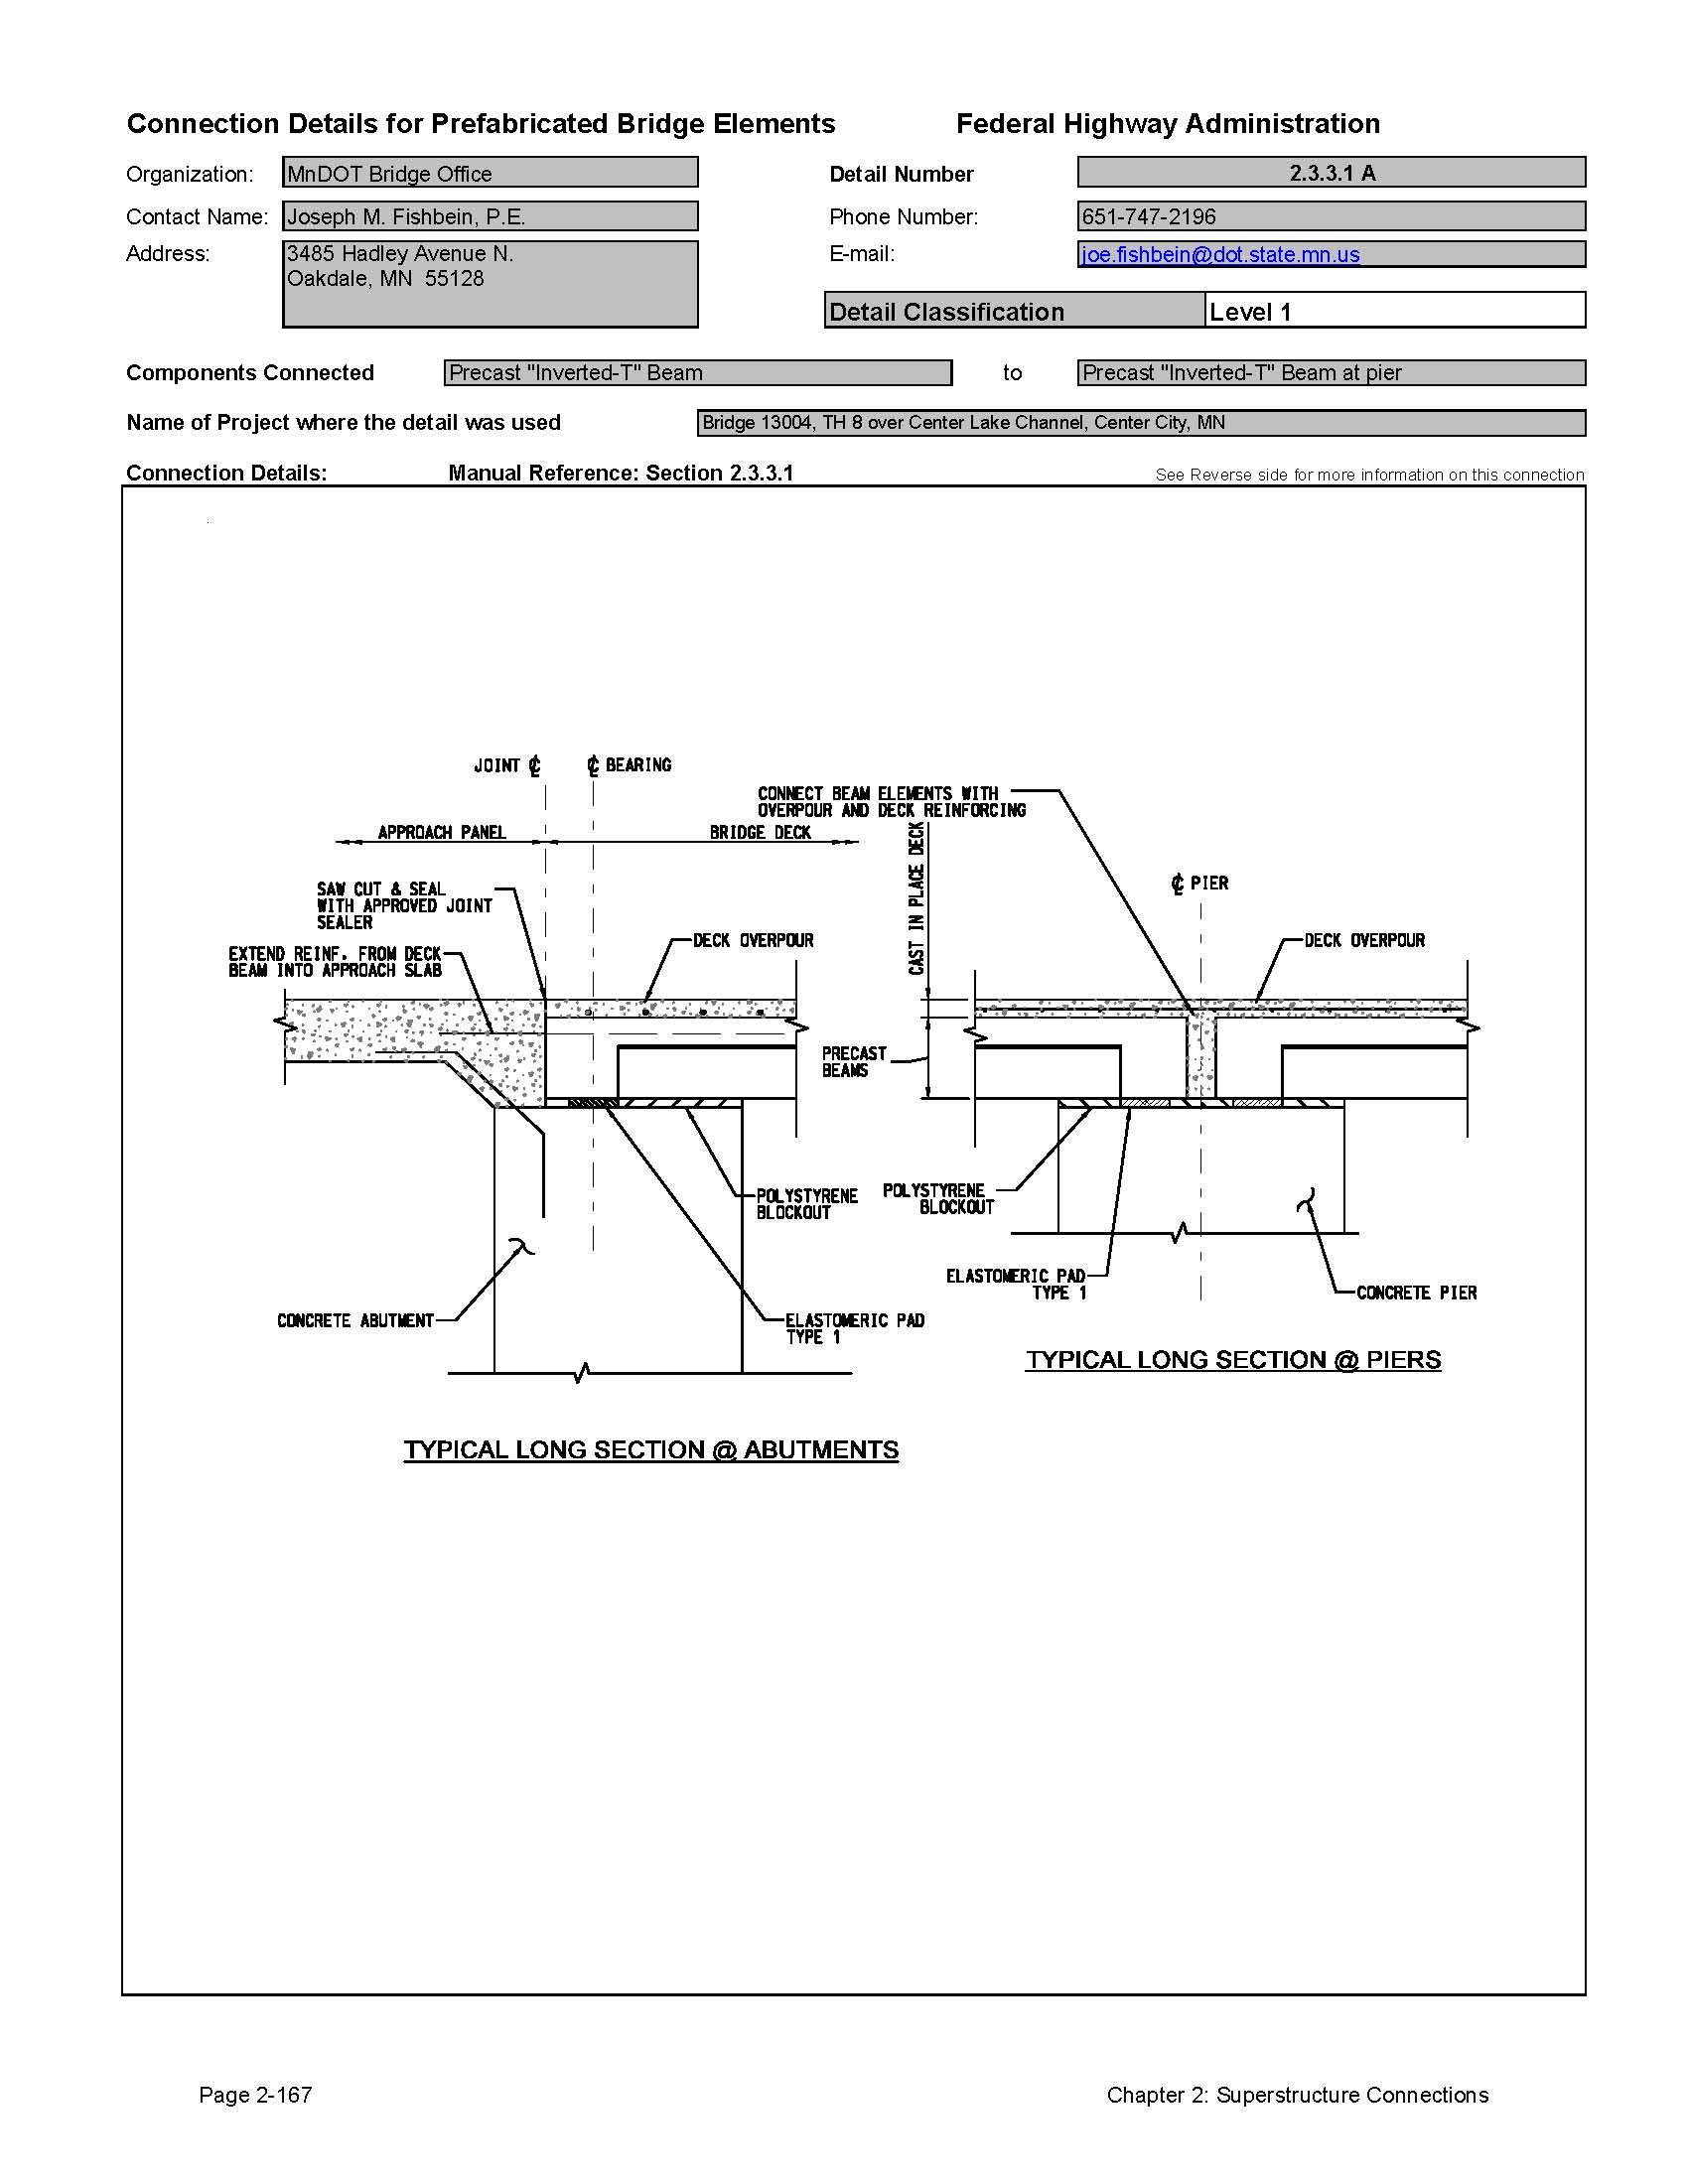 hight resolution of this data sheet shows the connection between a precast inverted t beam and